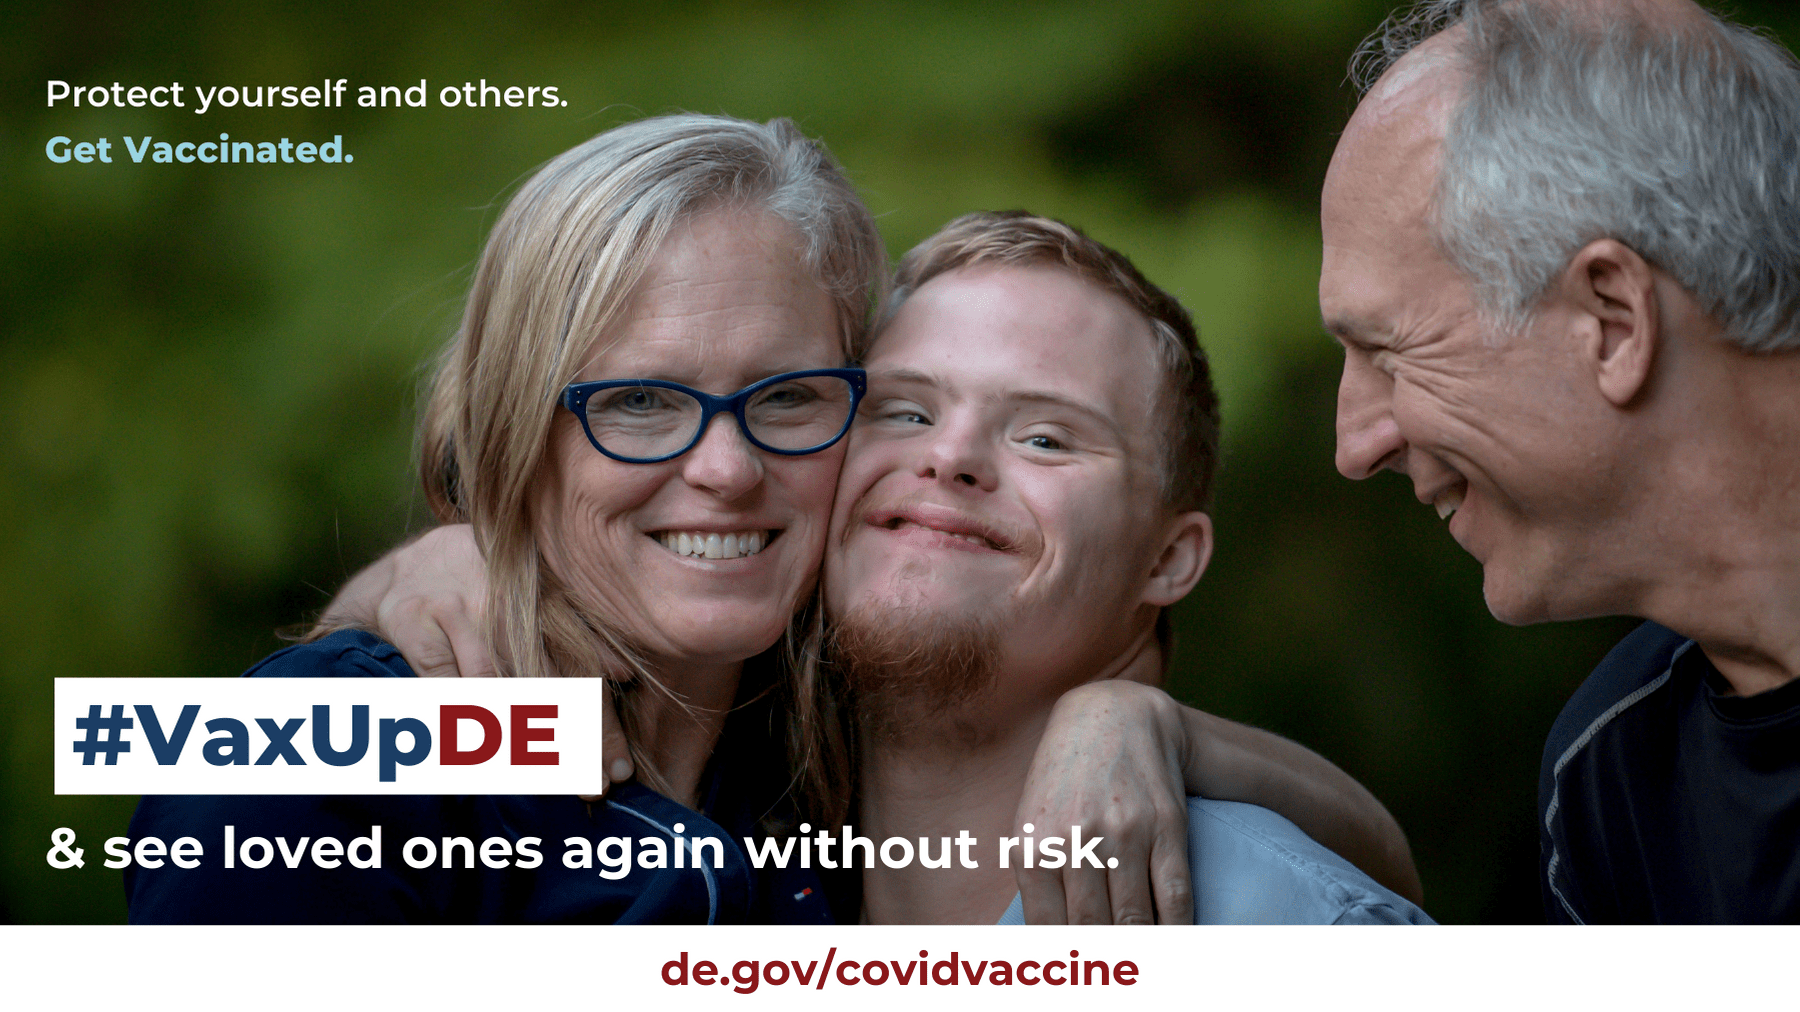 VaxUpDE Protect yourself and others. Get vaccinated. Family embraces son outside.